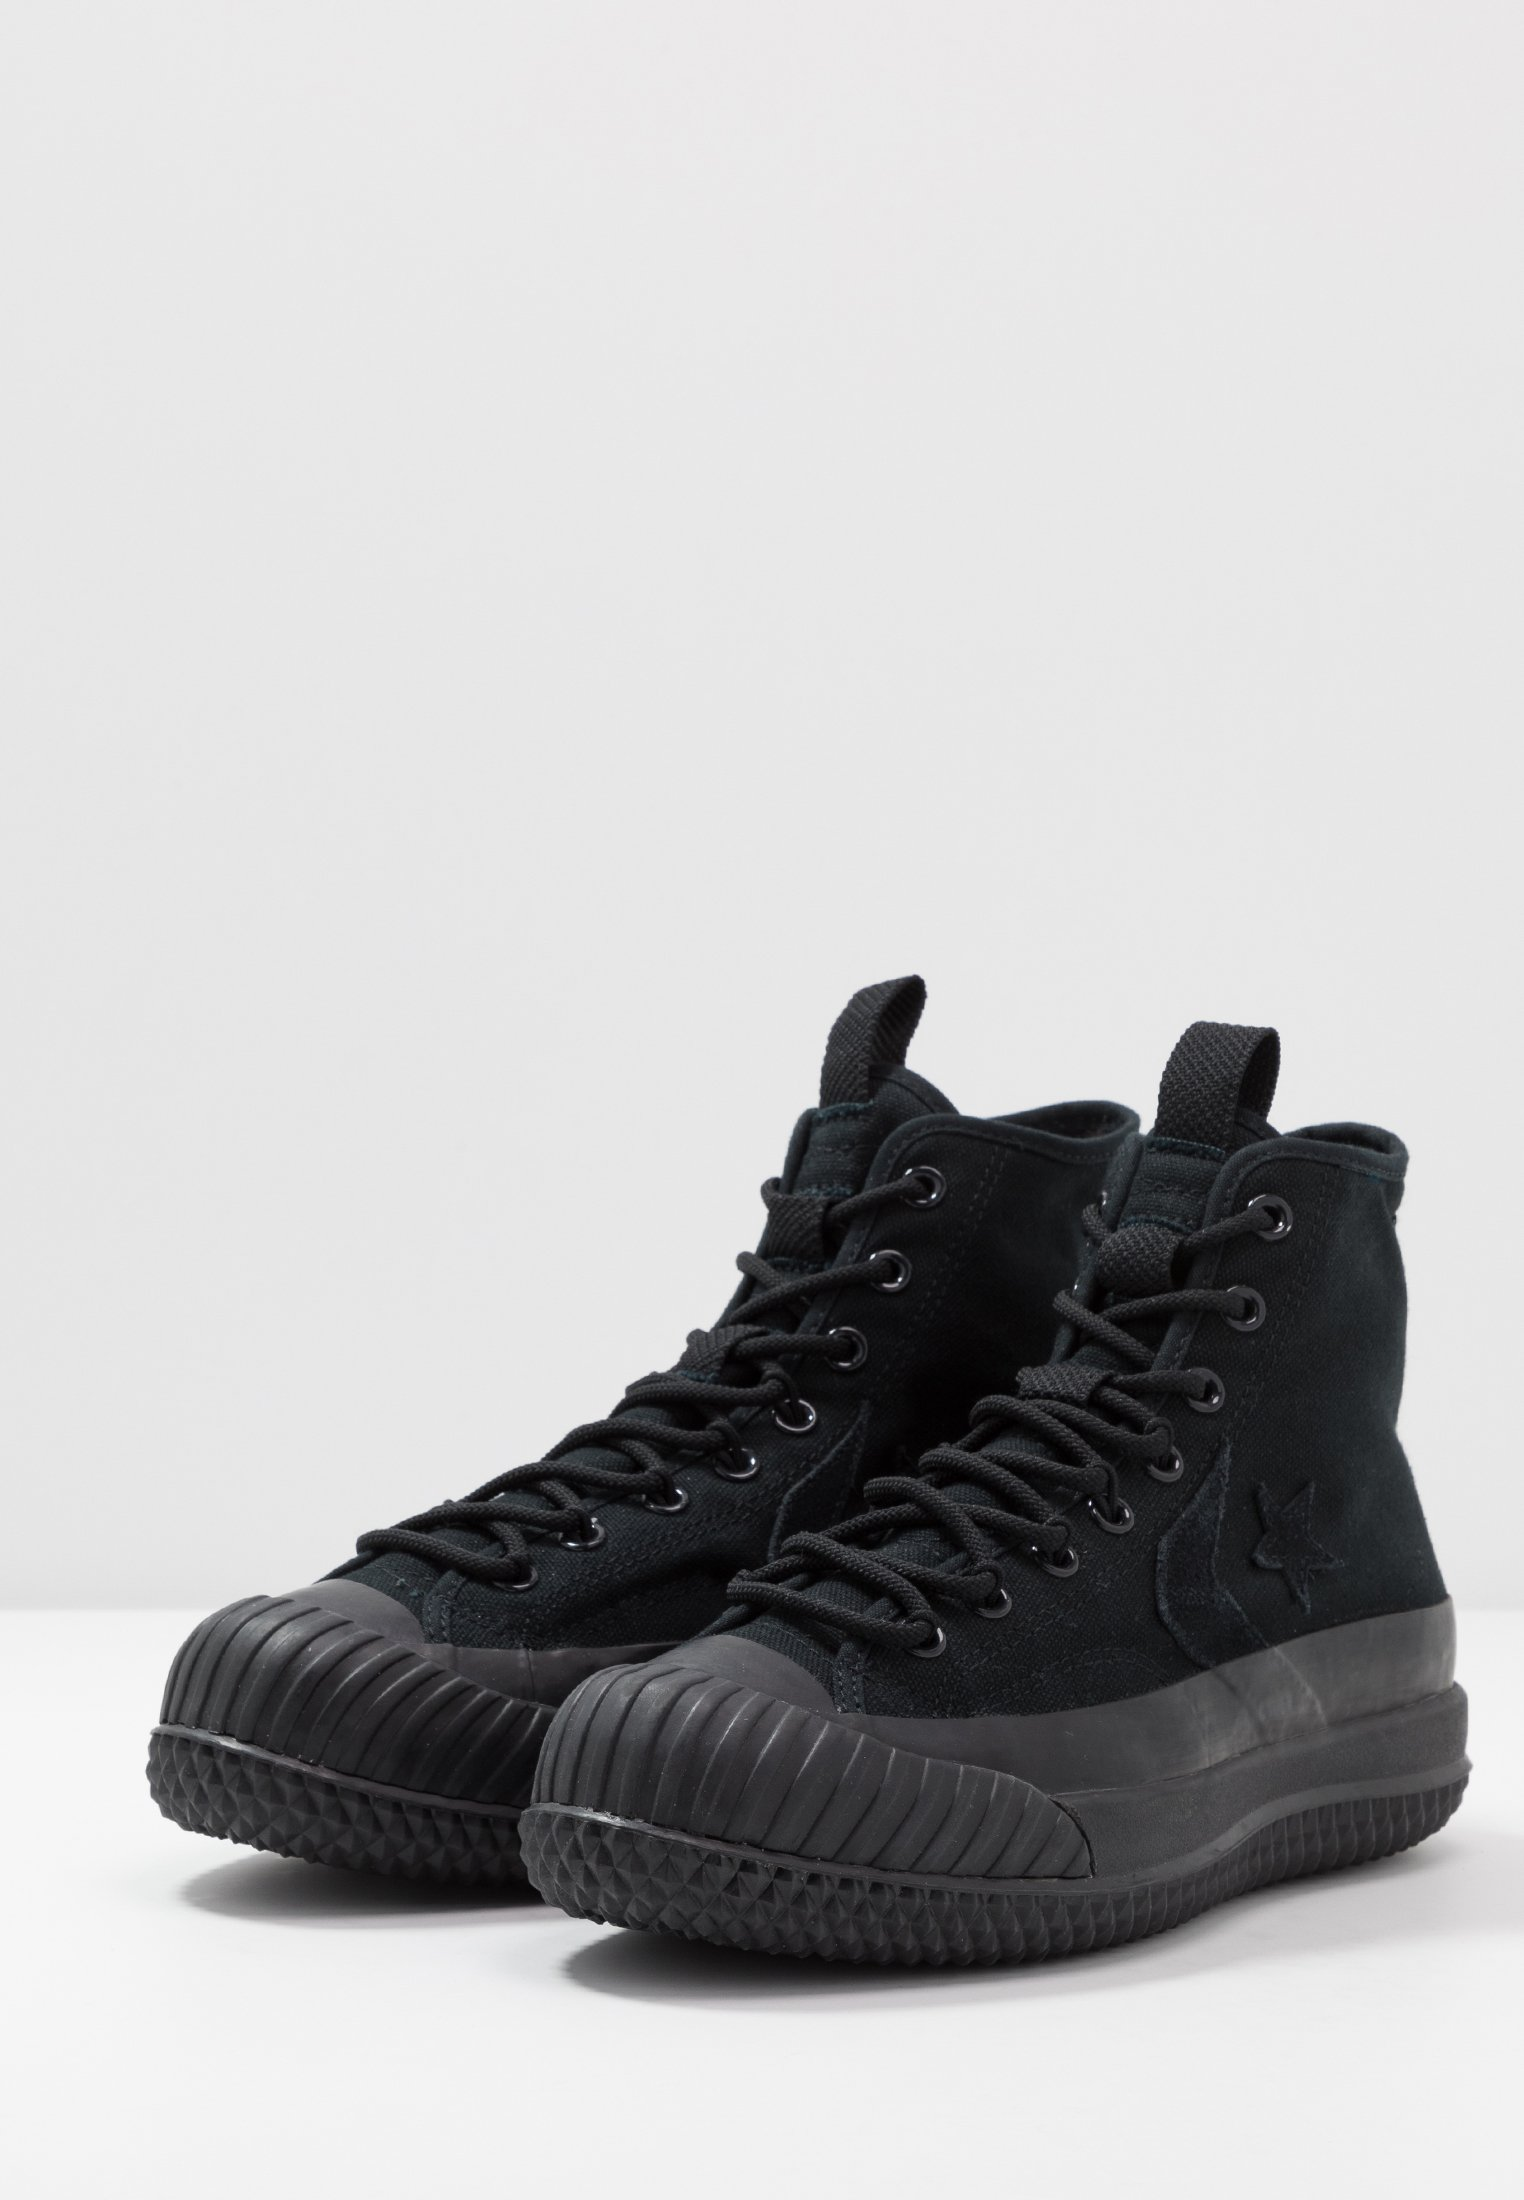 Converse Bosey Water Repellent - Sneaker High Black Friday